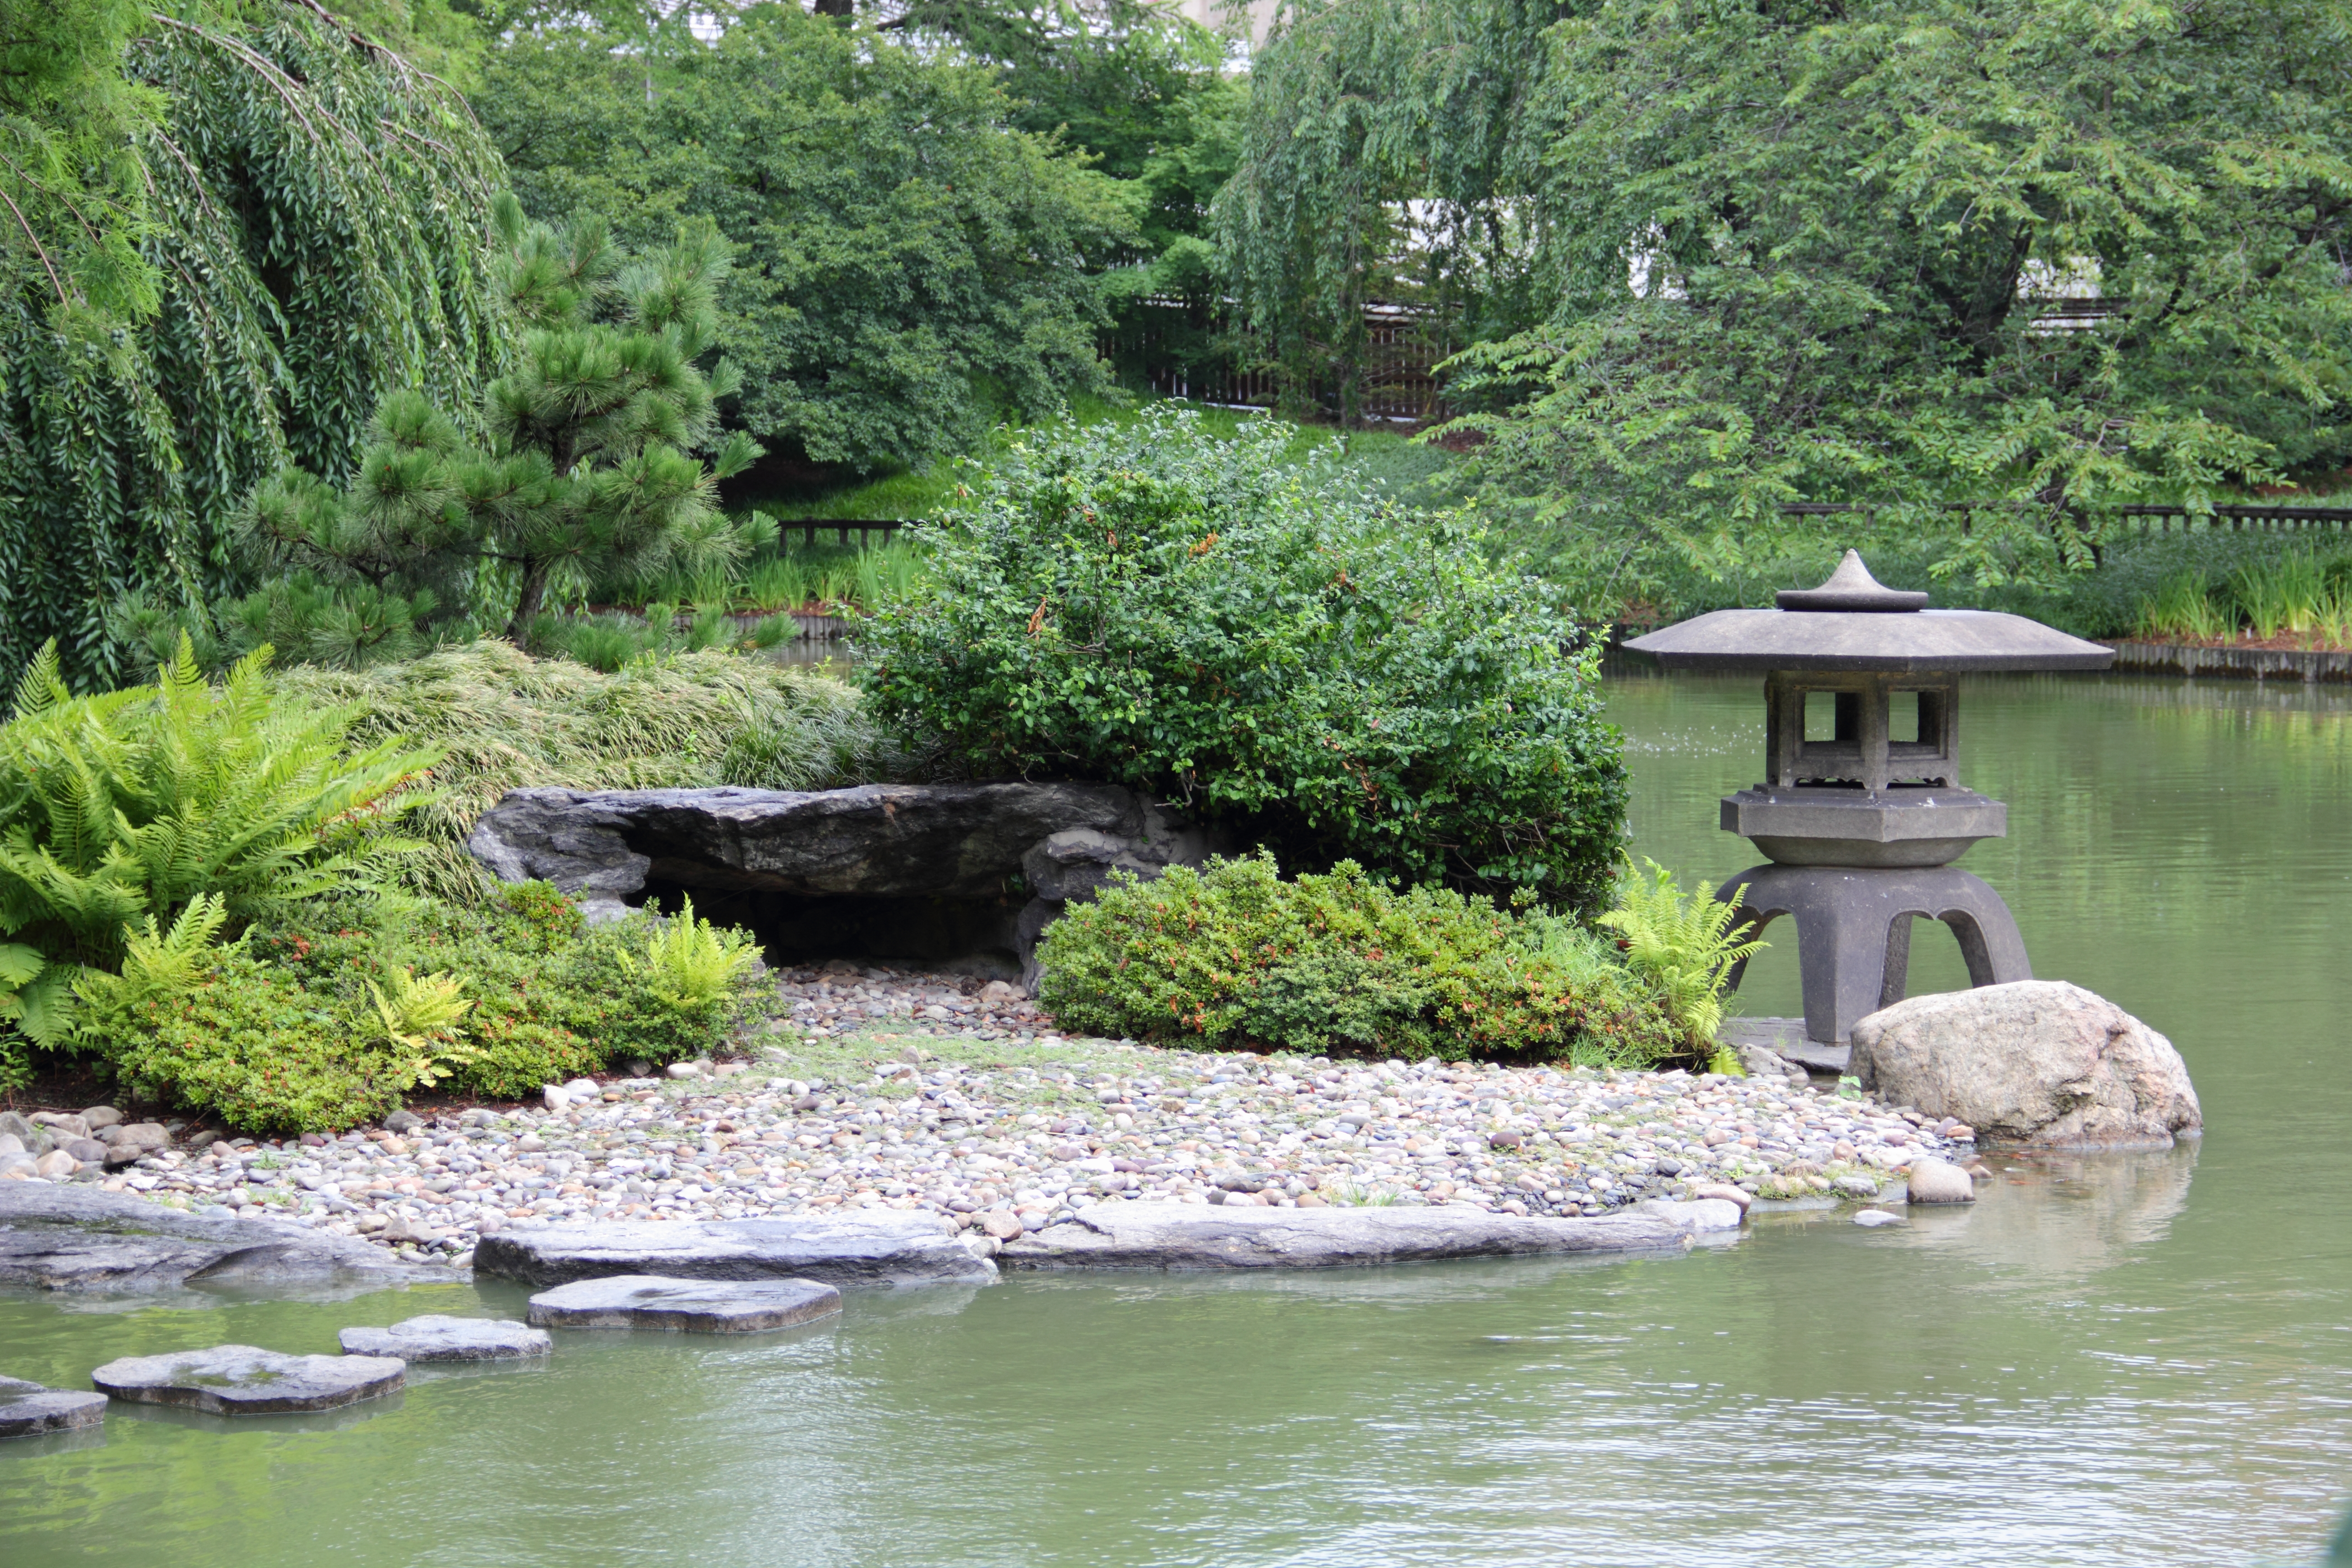 File:Japanese Hill-and-Pond Garden, Brooklyn 04.JPG